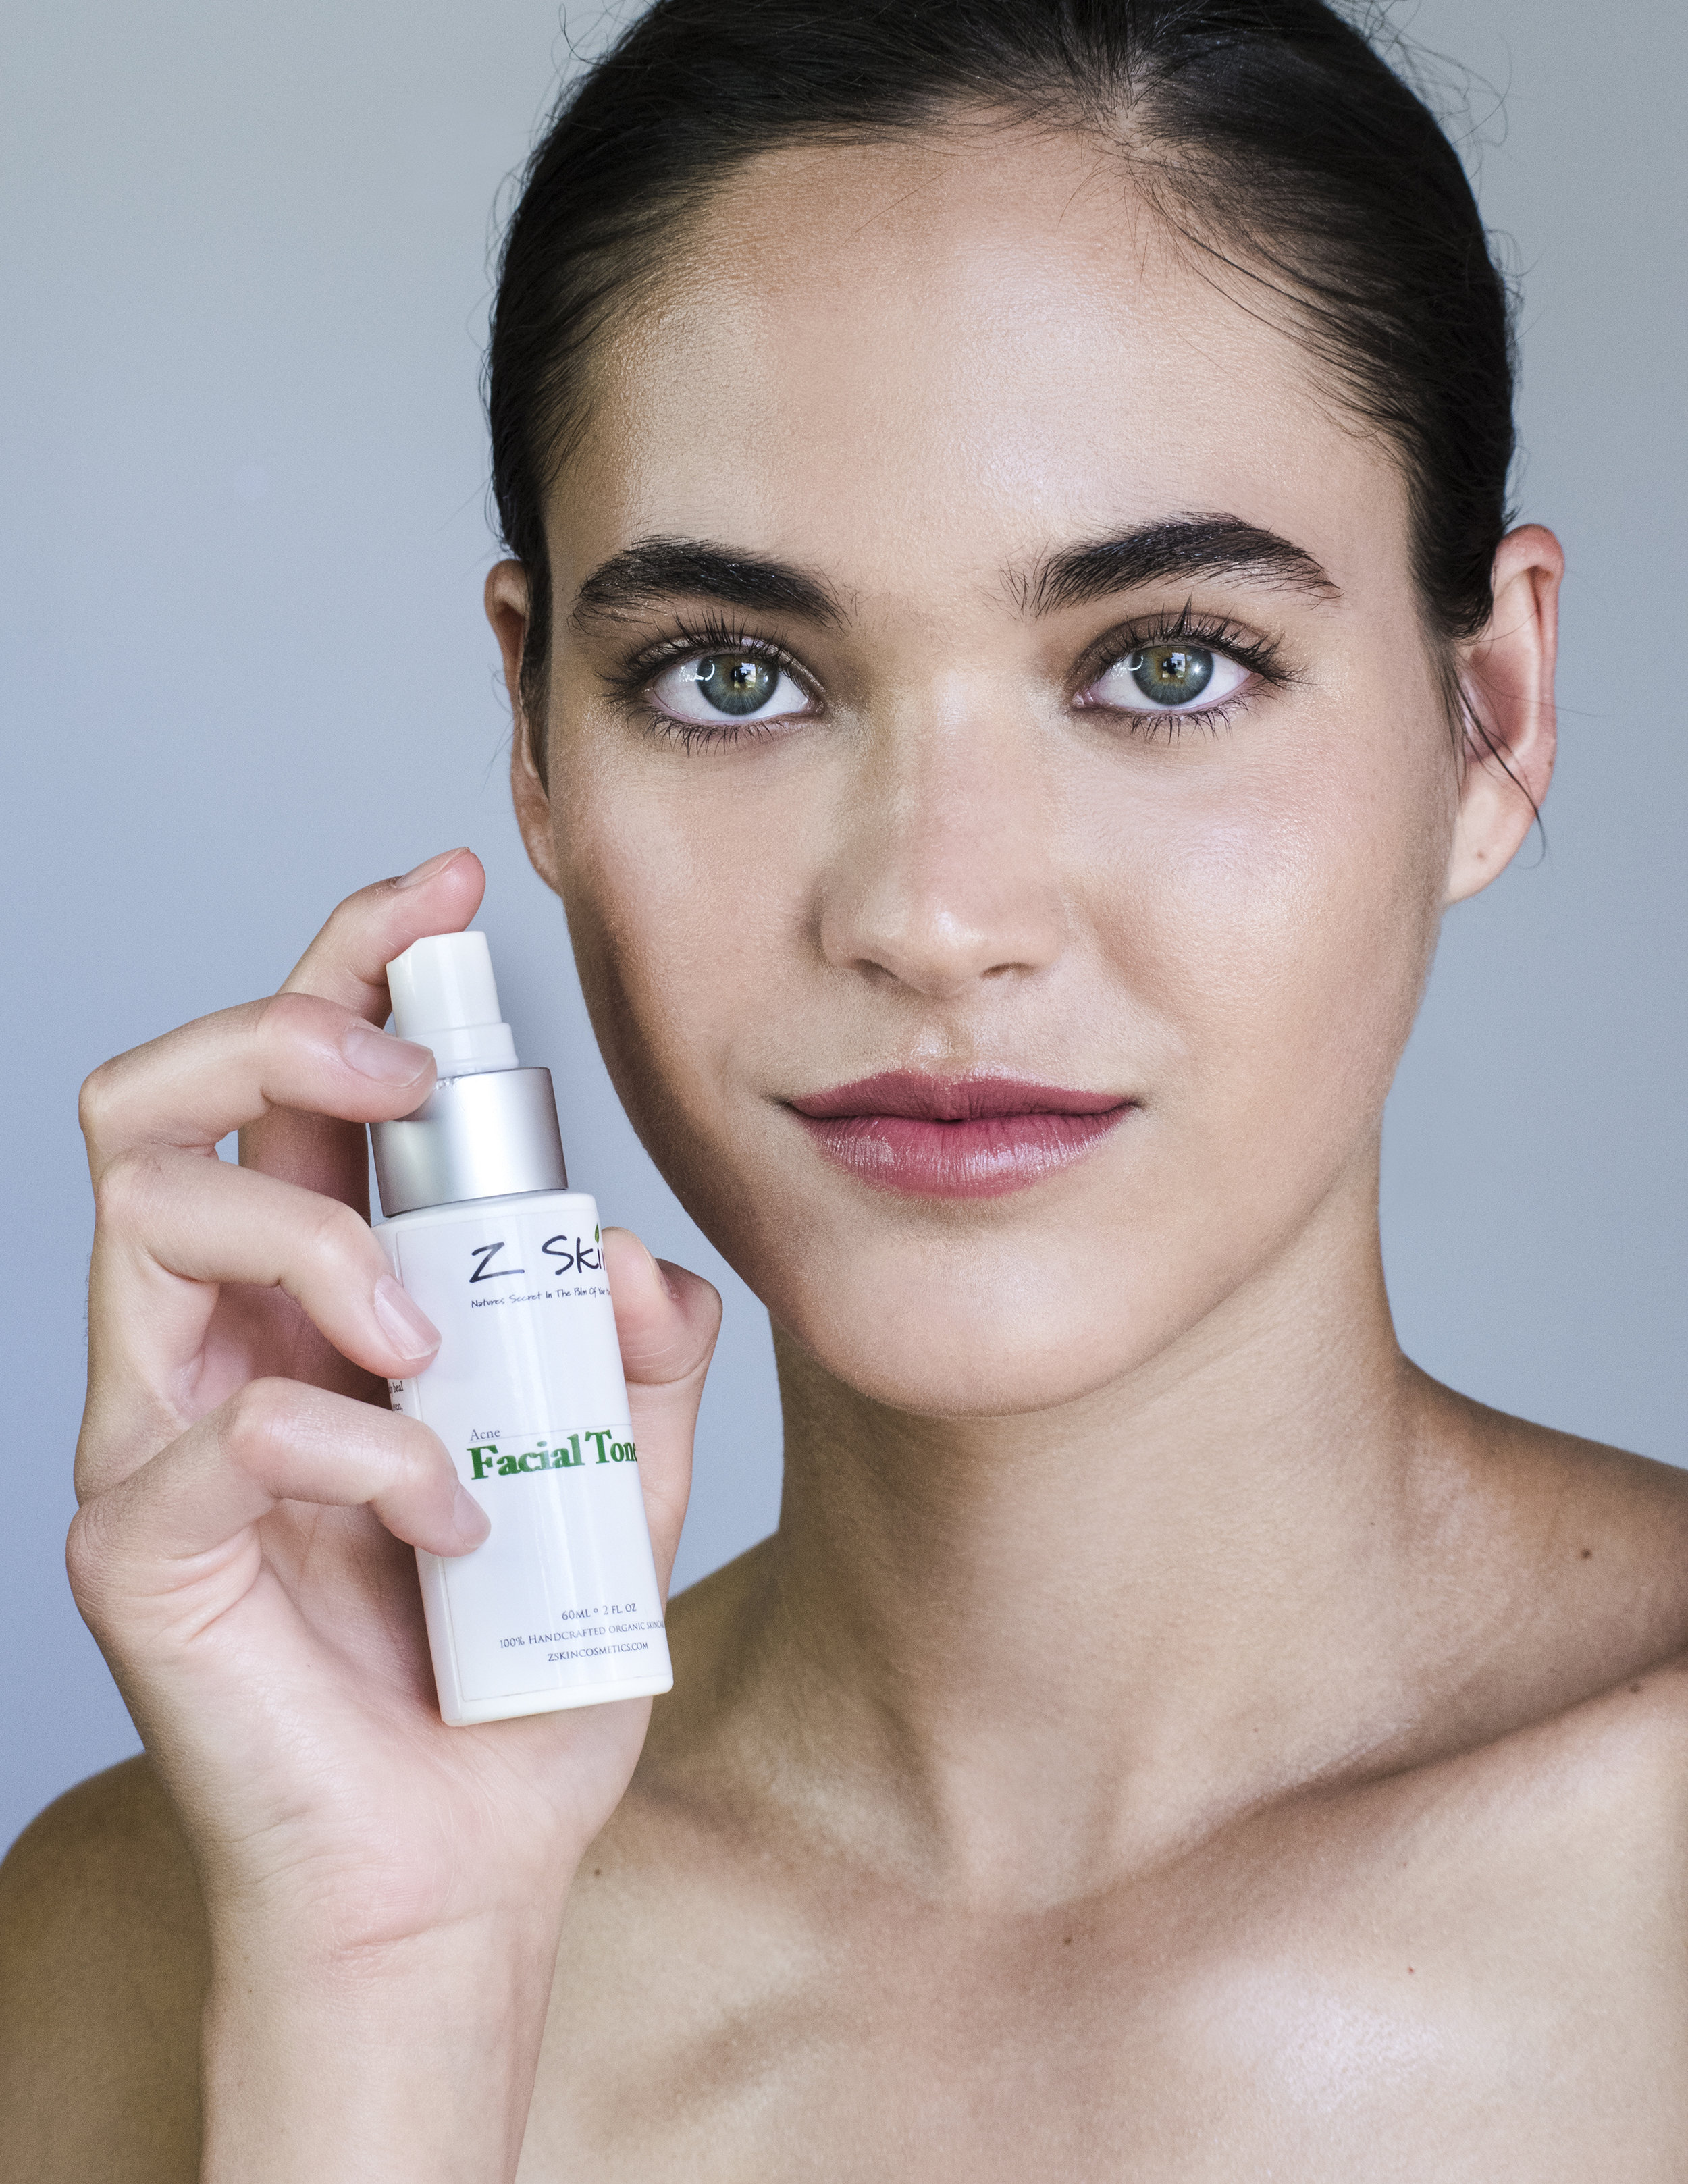 3. Well-Toned - We spritzed our model with Z Skin Cosmetics' Face Lift Toner. This one helps minimize any fine lines and adds a hydration boost. It also feels refreshing and lovely.